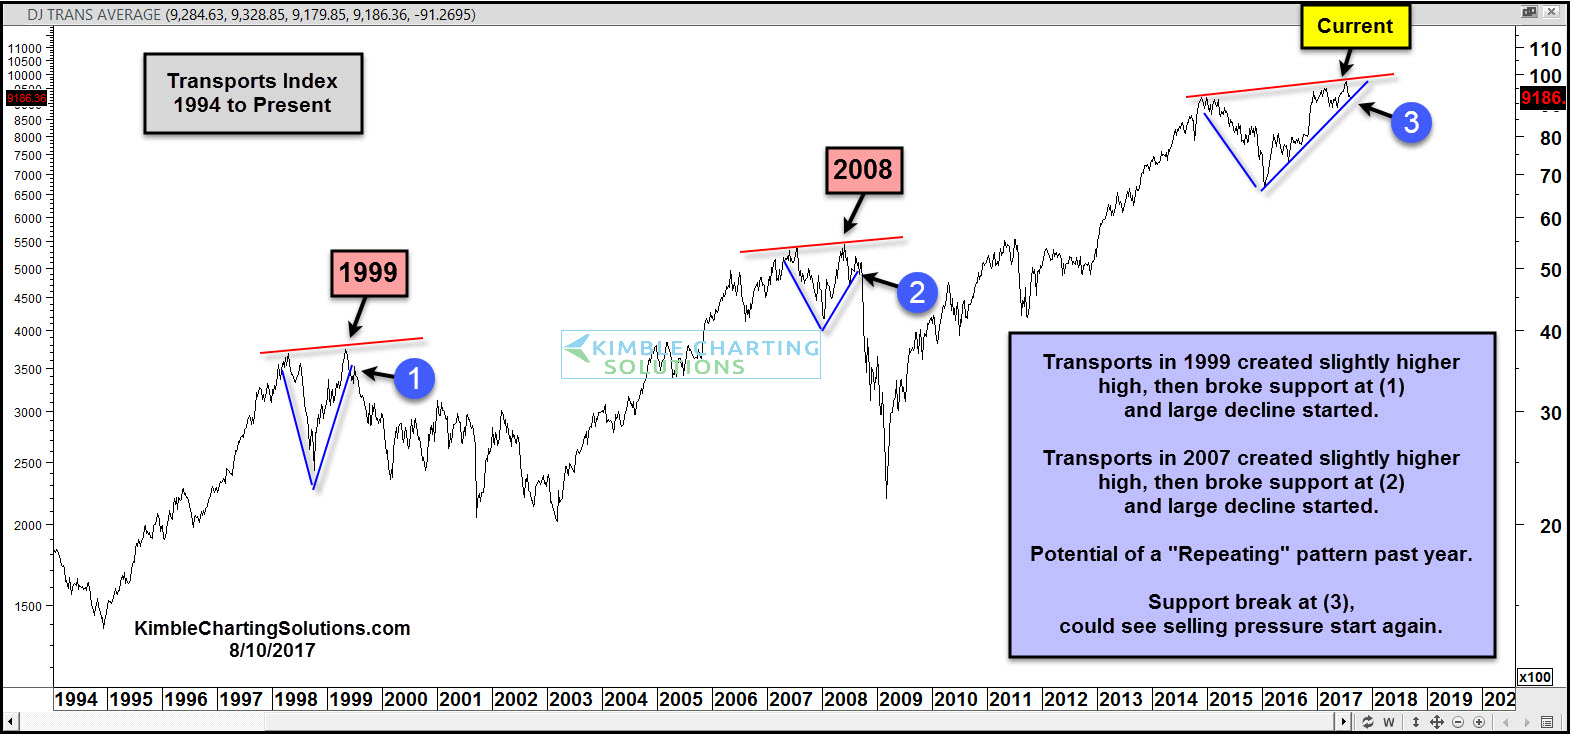 Dow Transports index chris kimble chart